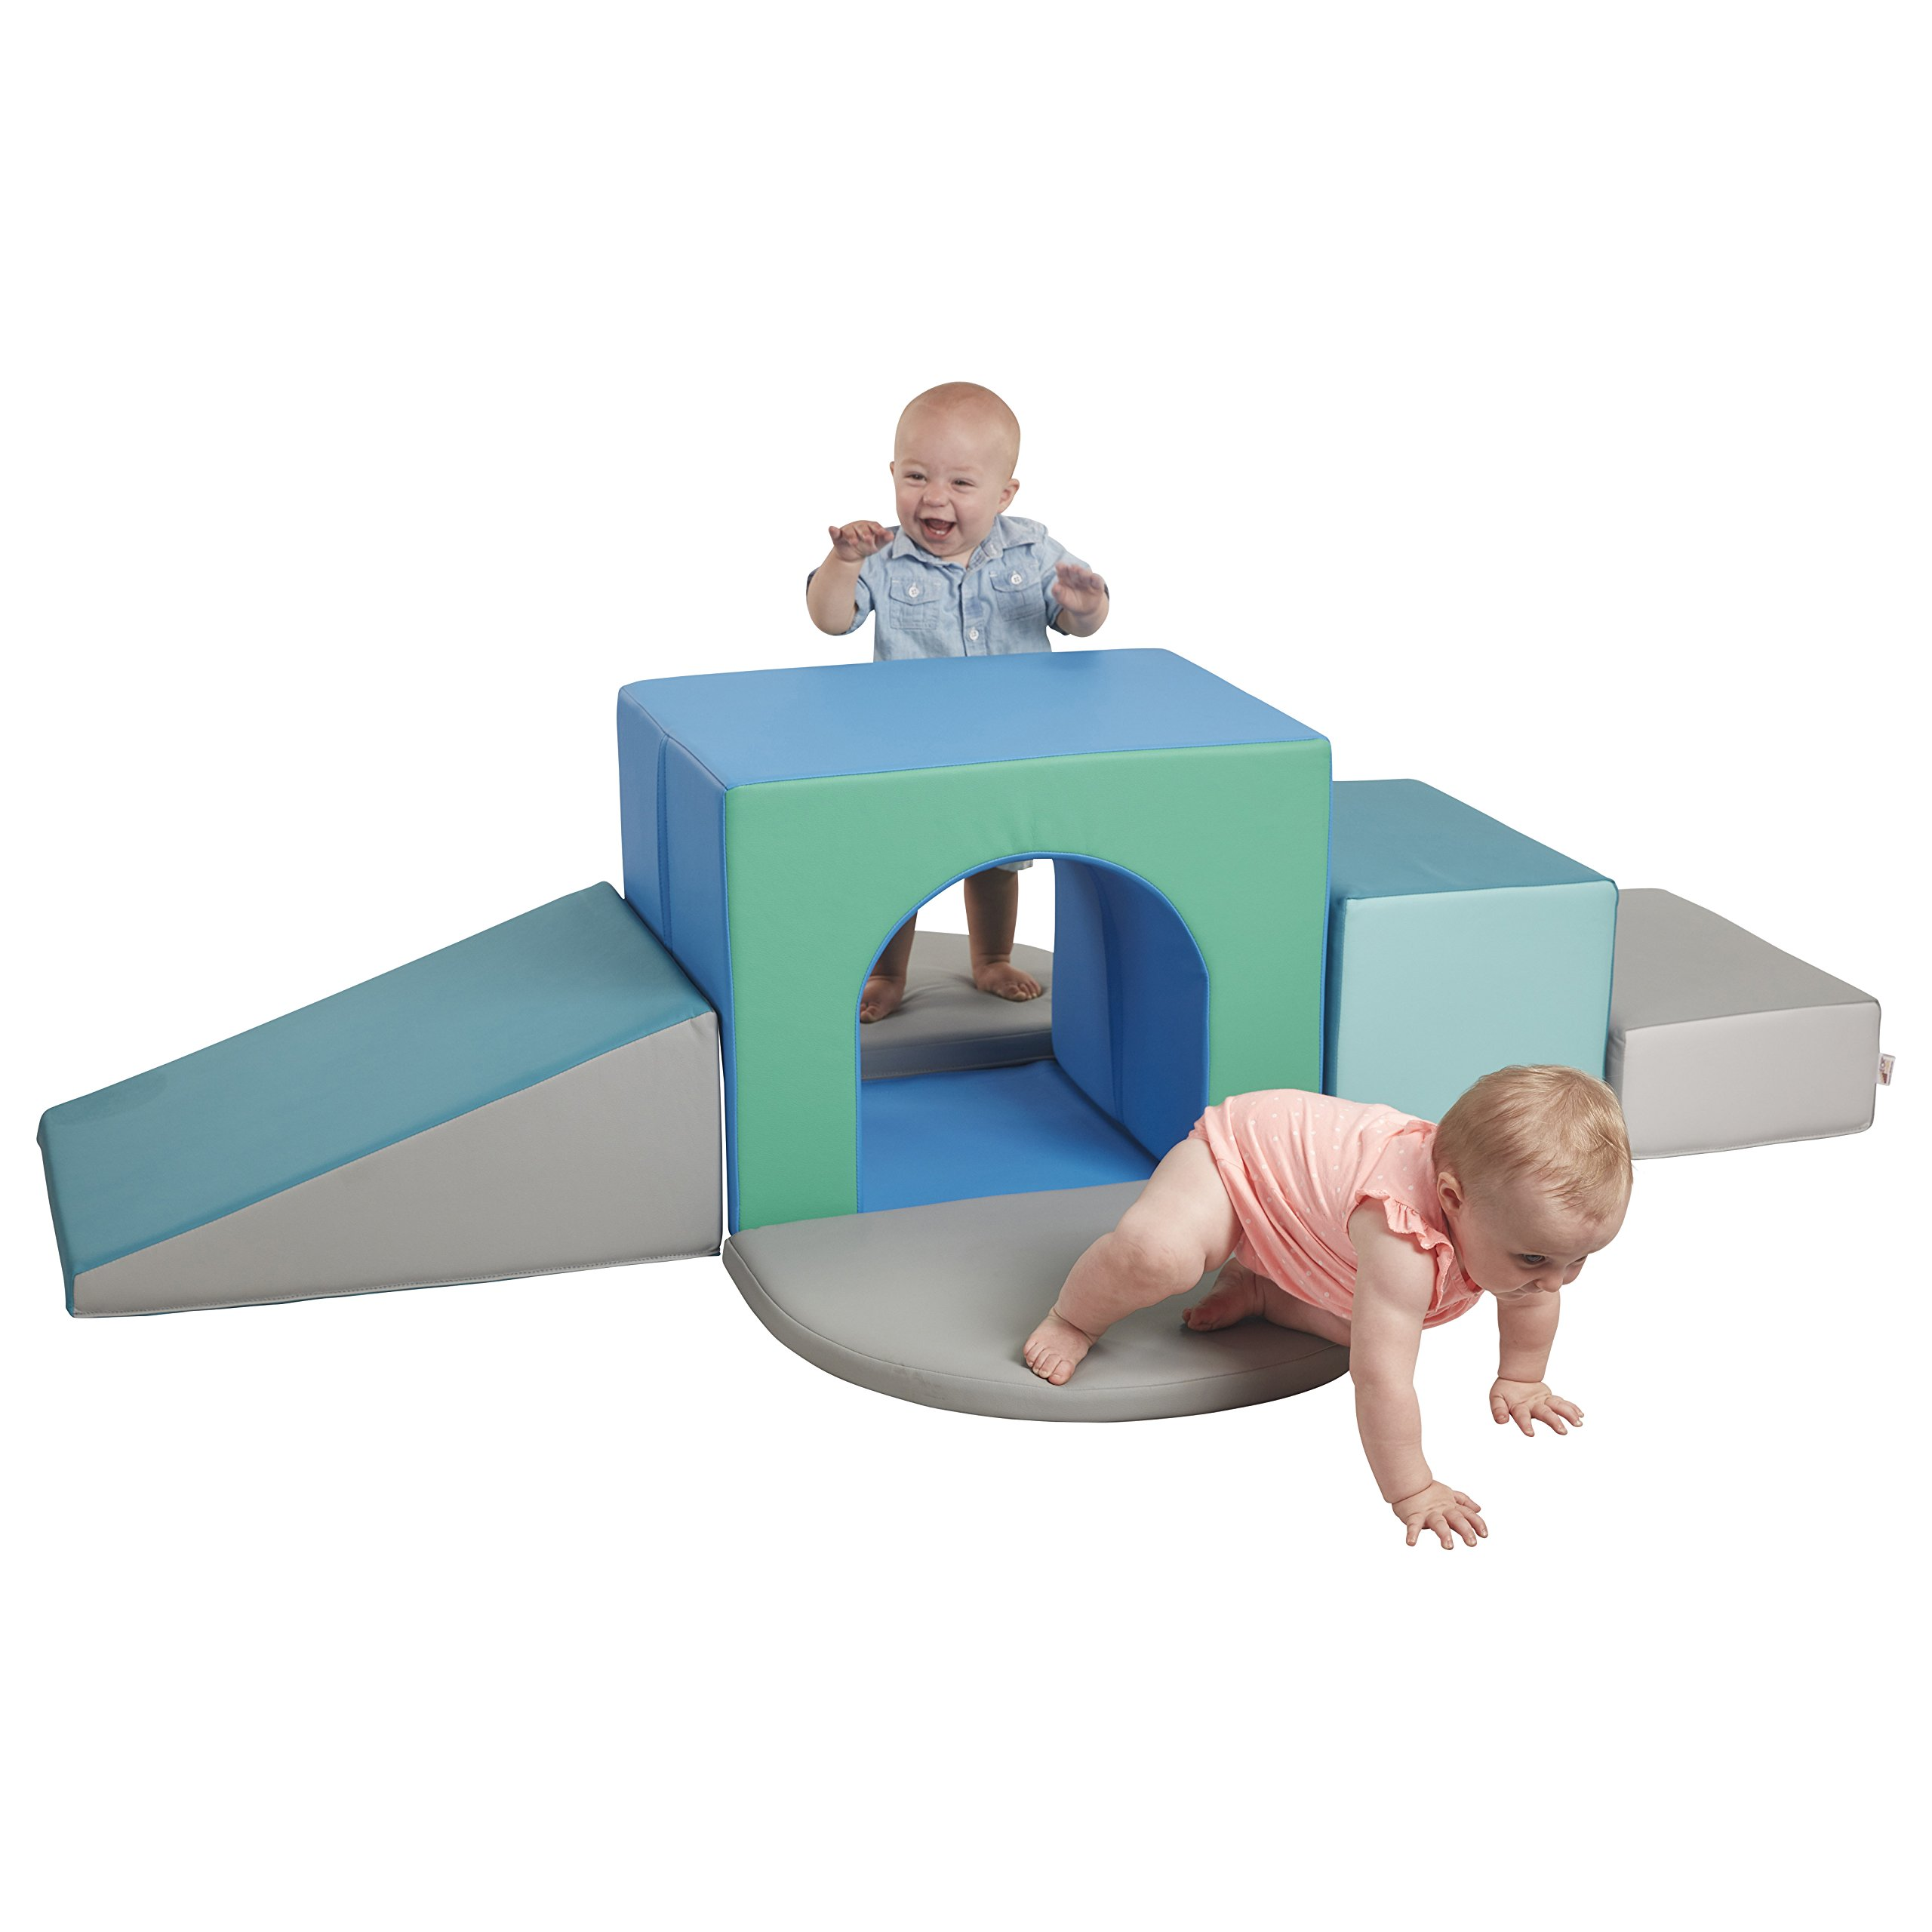 ECR4Kids SoftZone Junior Single Tunnel Maze Soft Foam Climber for Toddler Active Play, Contemporary